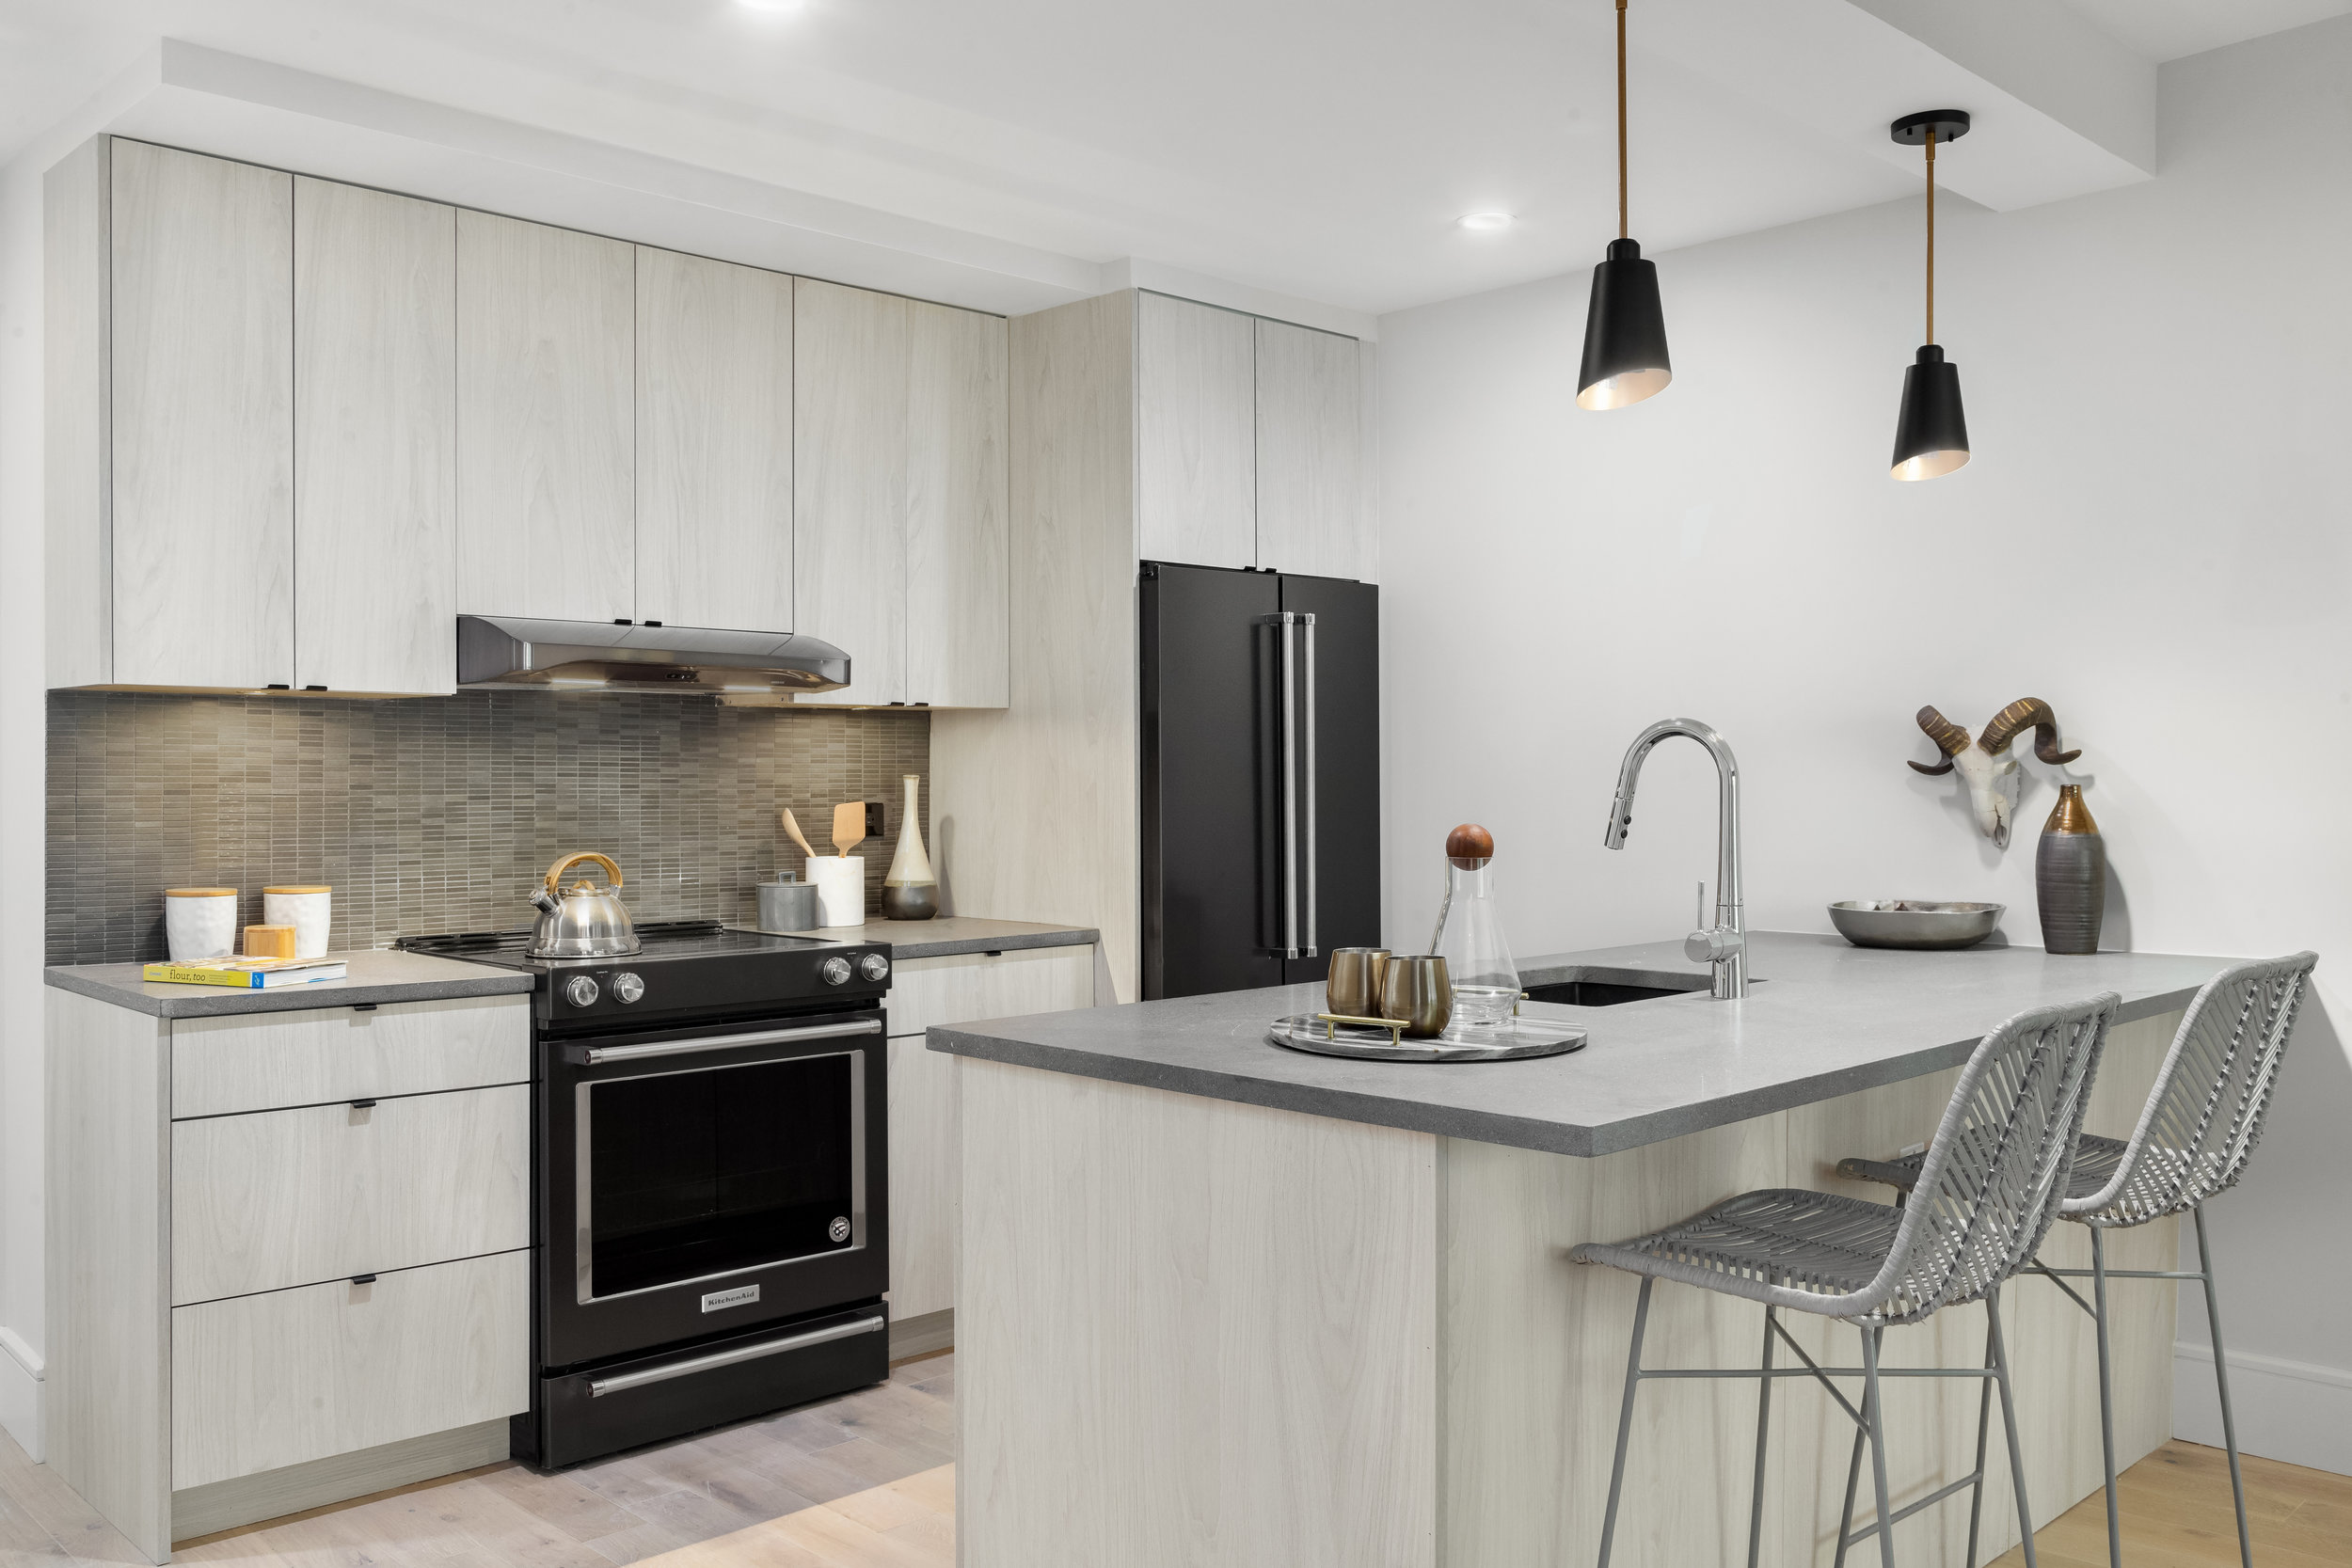 Sales Launch At 15 East 19th Street In Prospect Park South